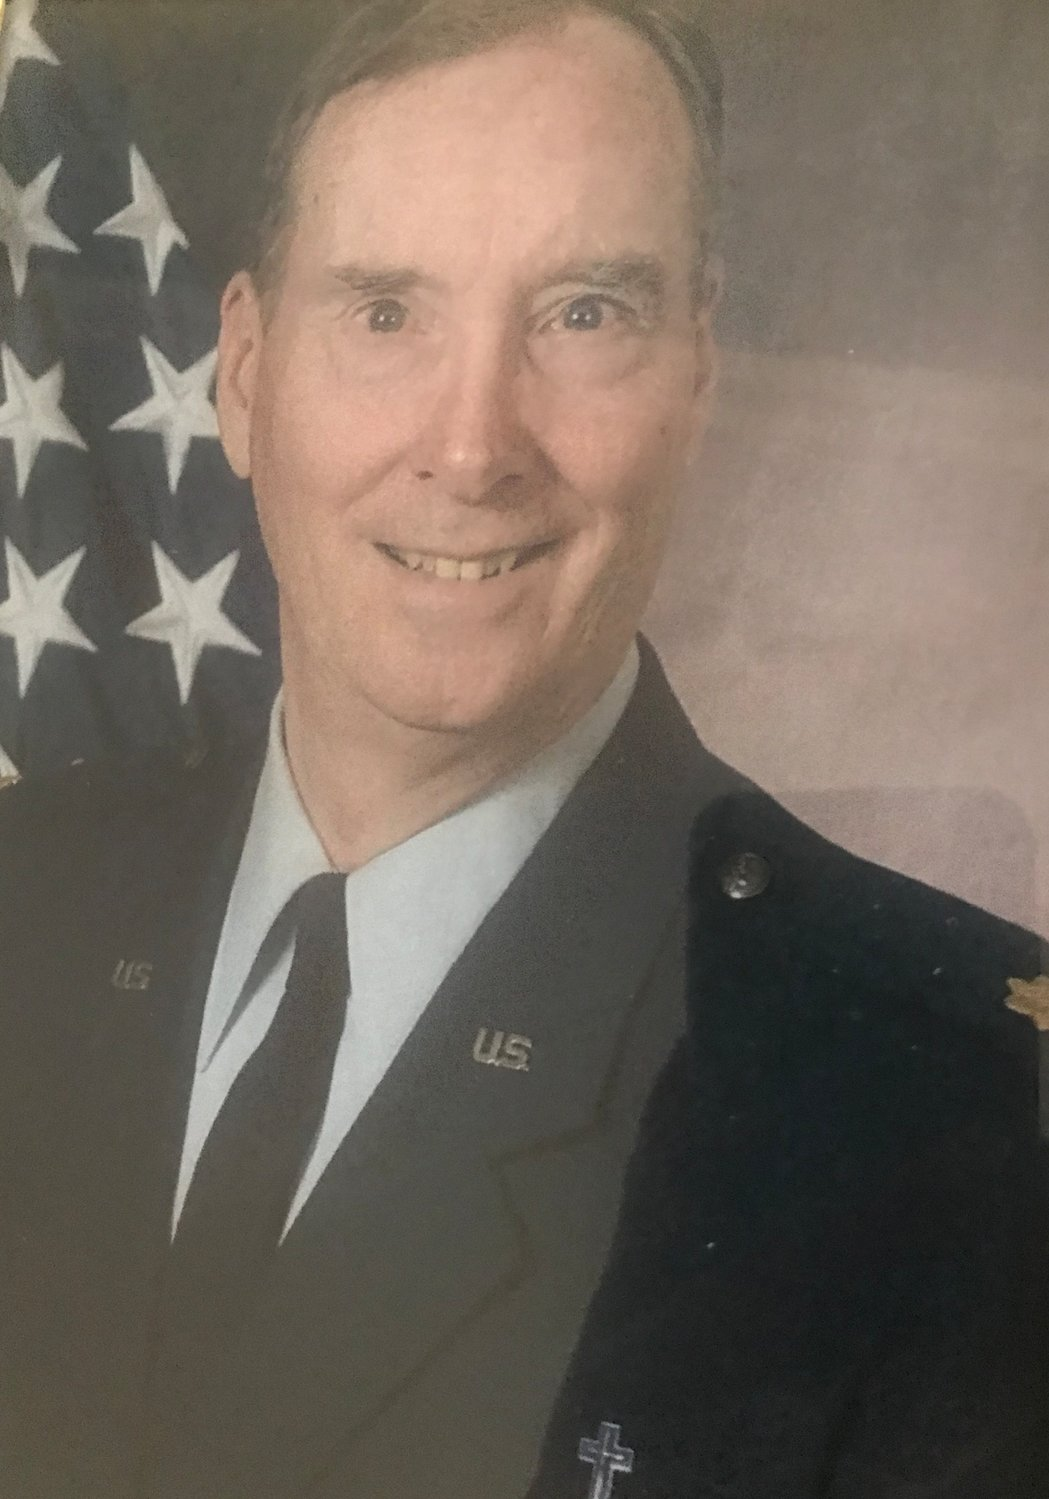 Hirten also served in the United States Air Force. Before his death, he served as chaplain at the Sheppard Air Force Base in Texas.